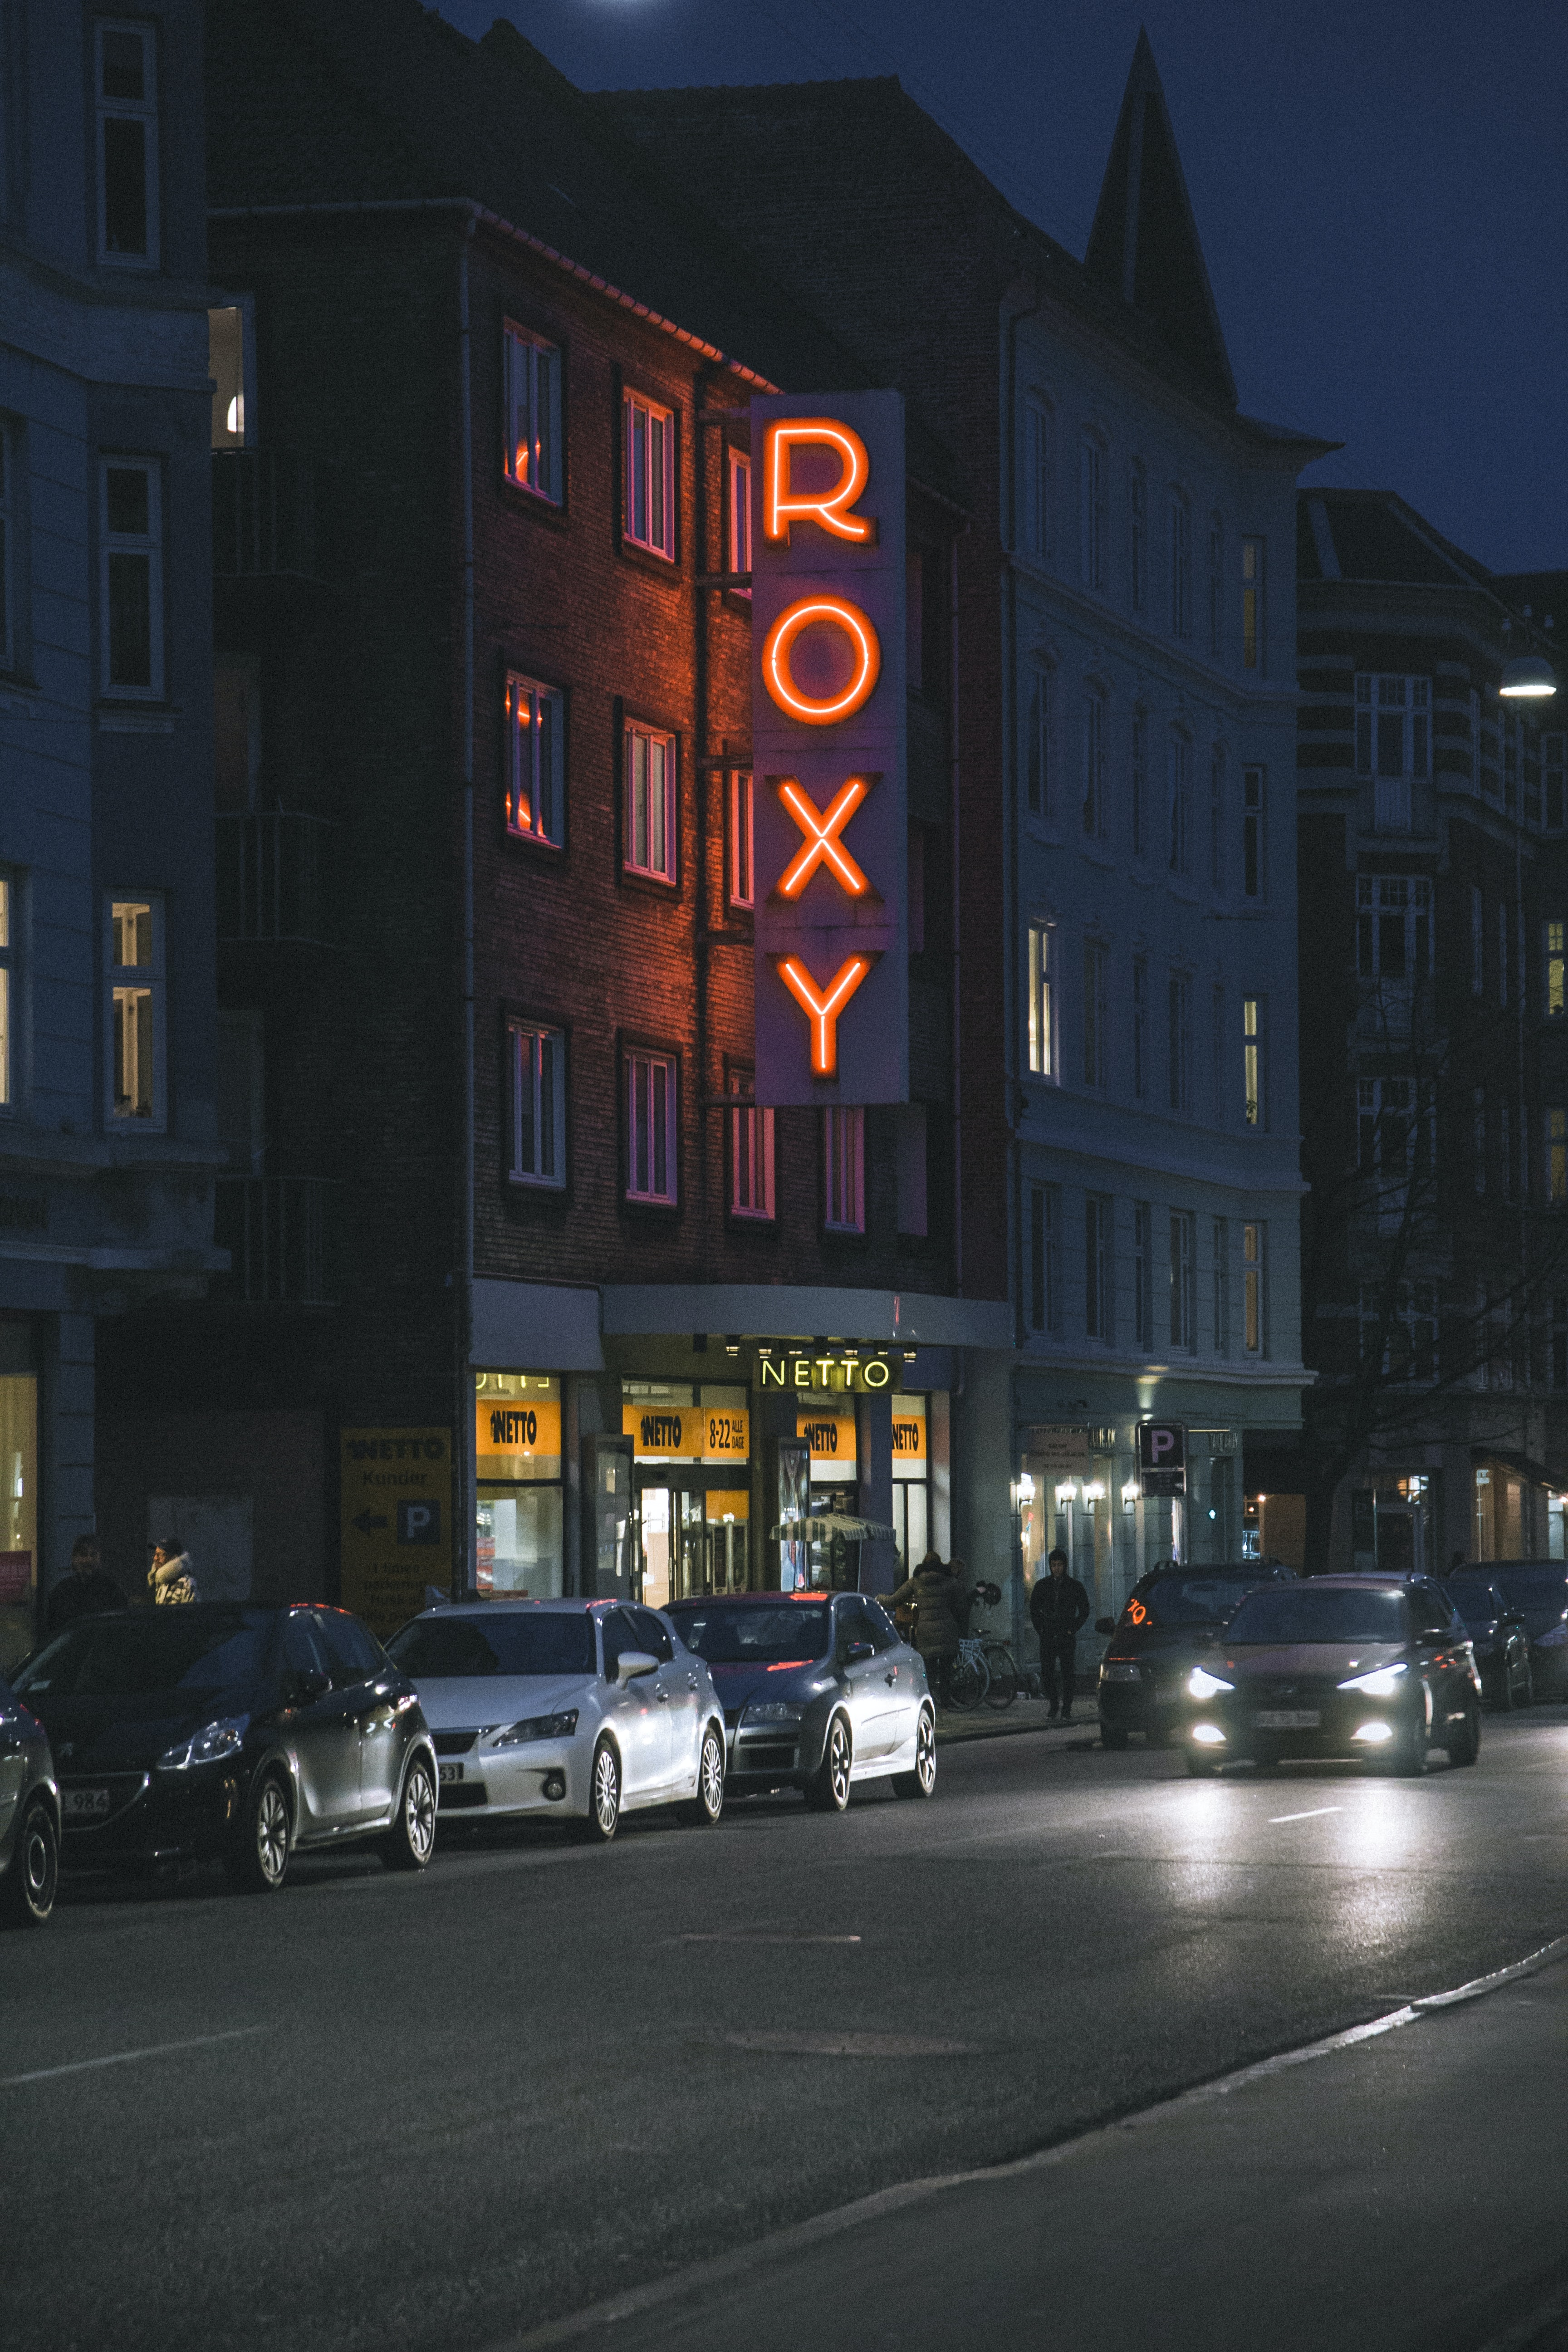 vehicles in front of Roxy establishment during nighttime